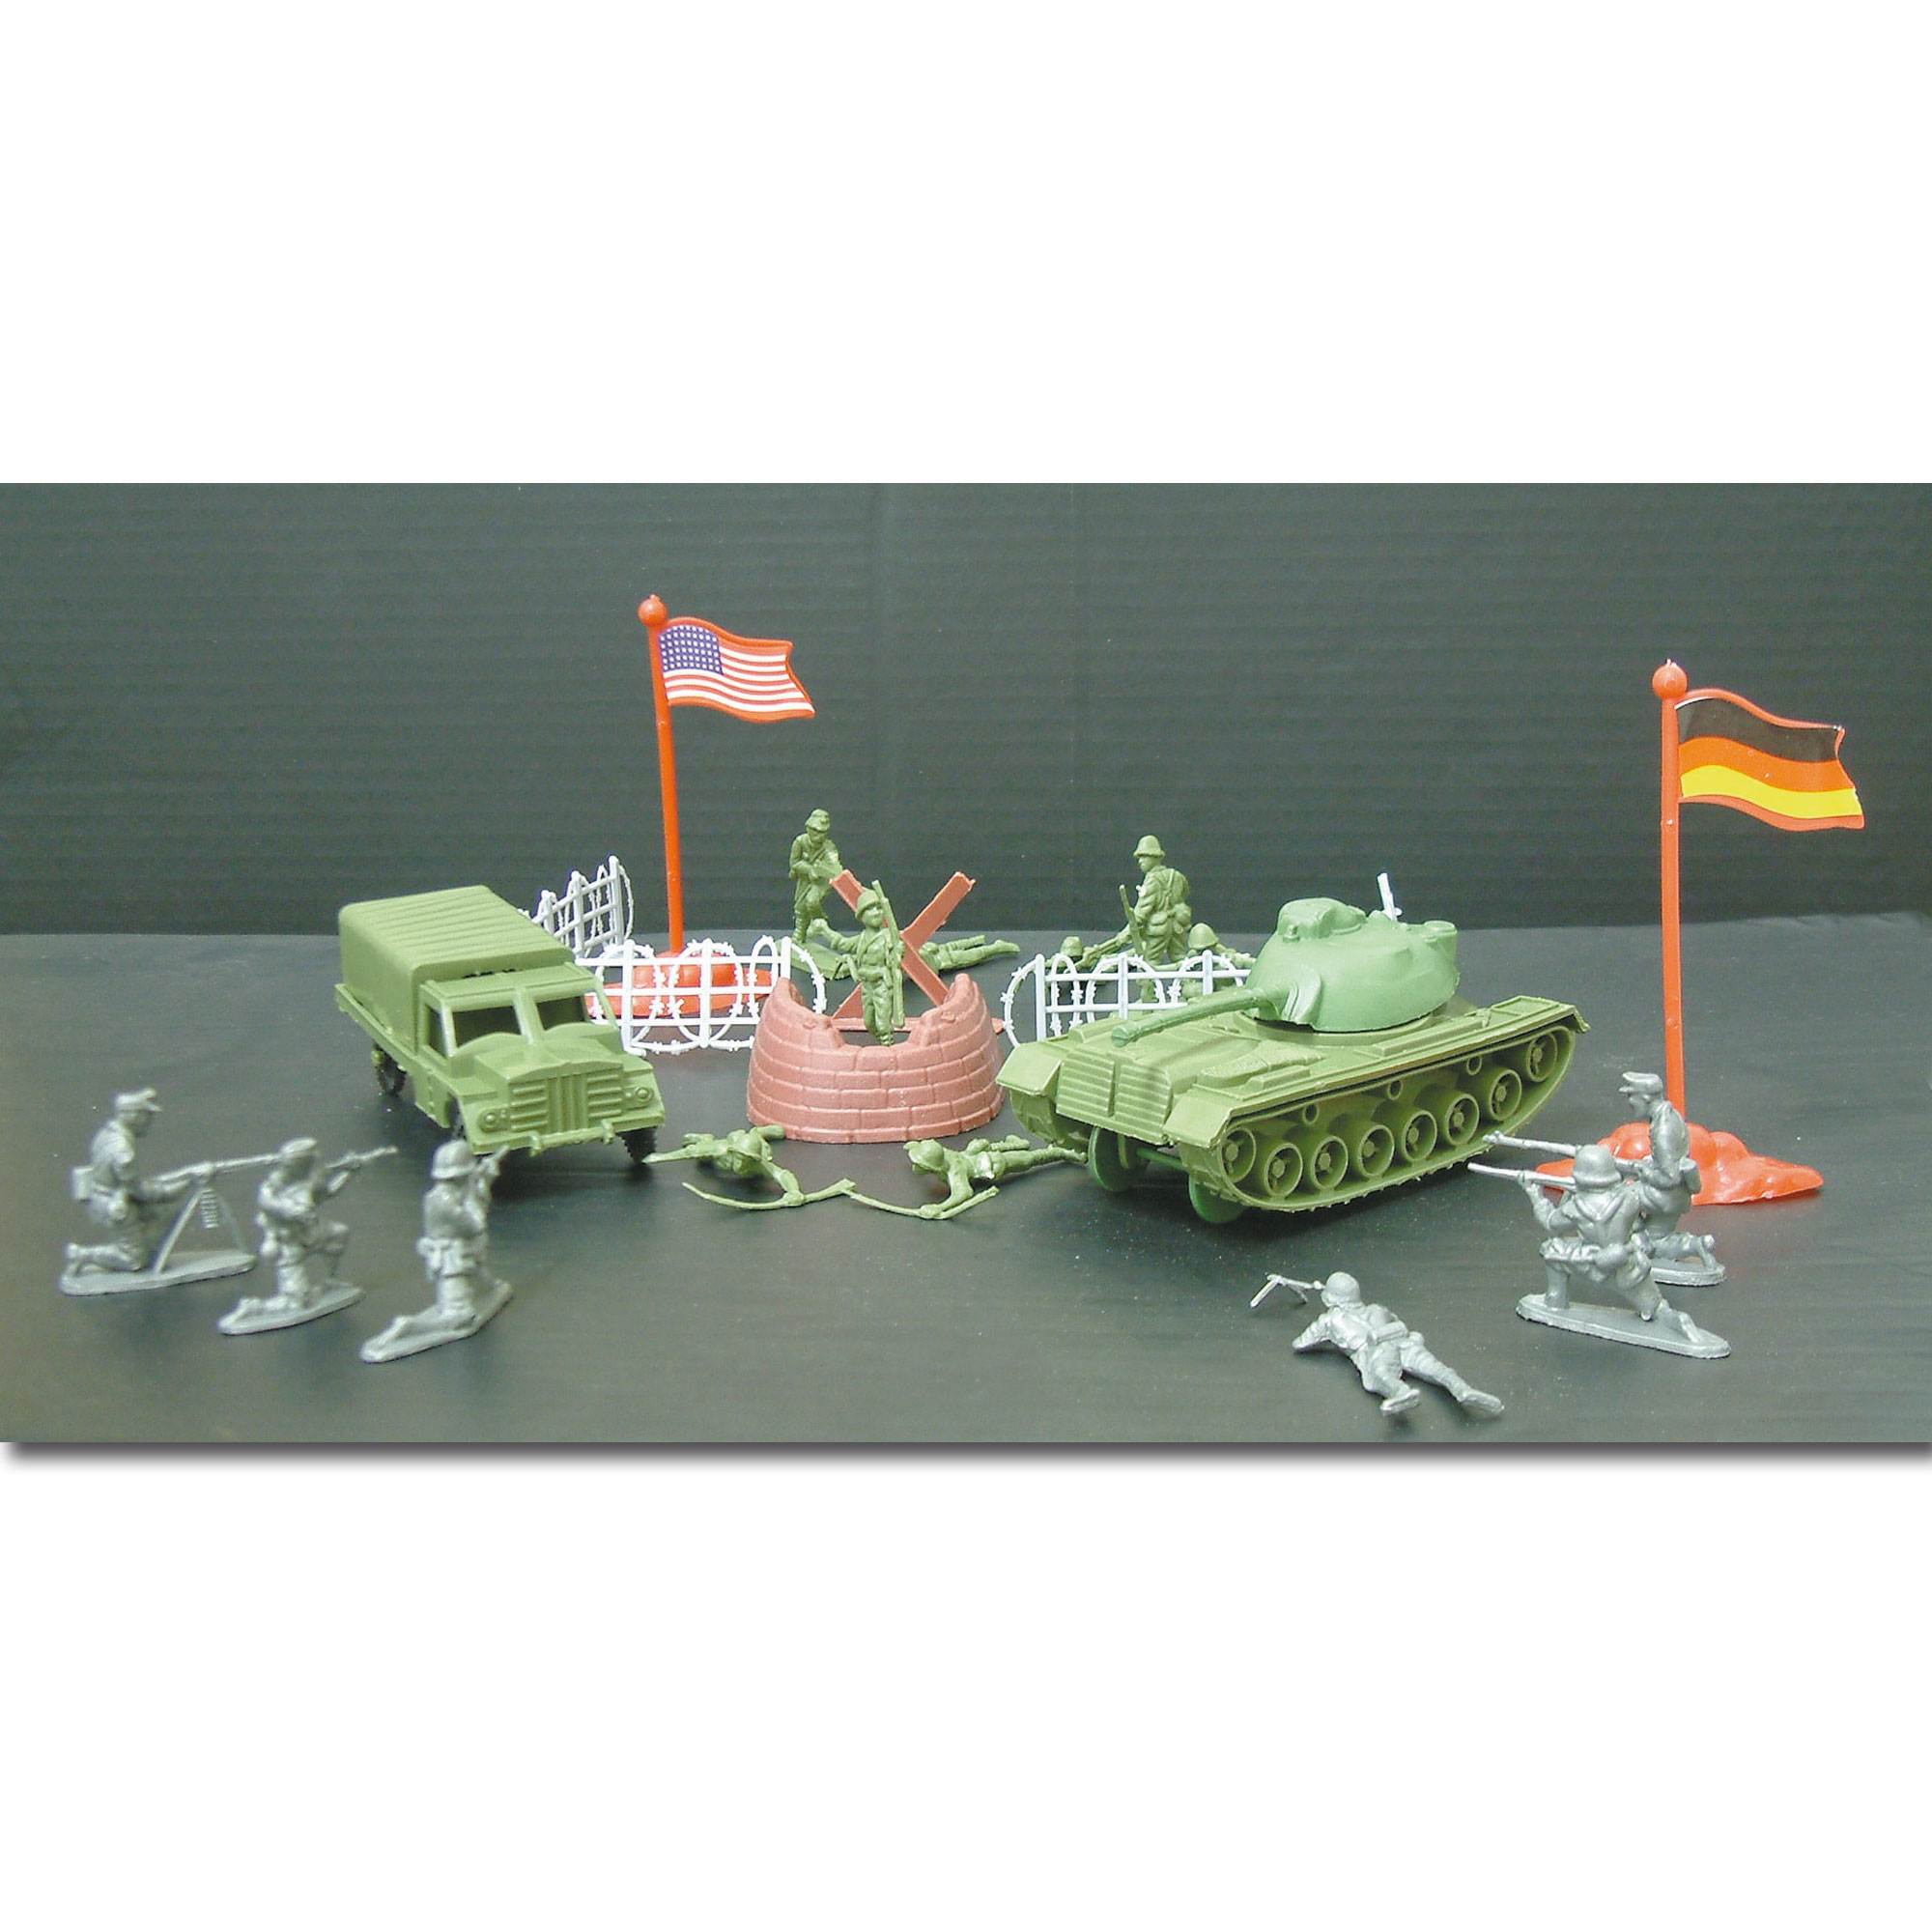 Soldier play set